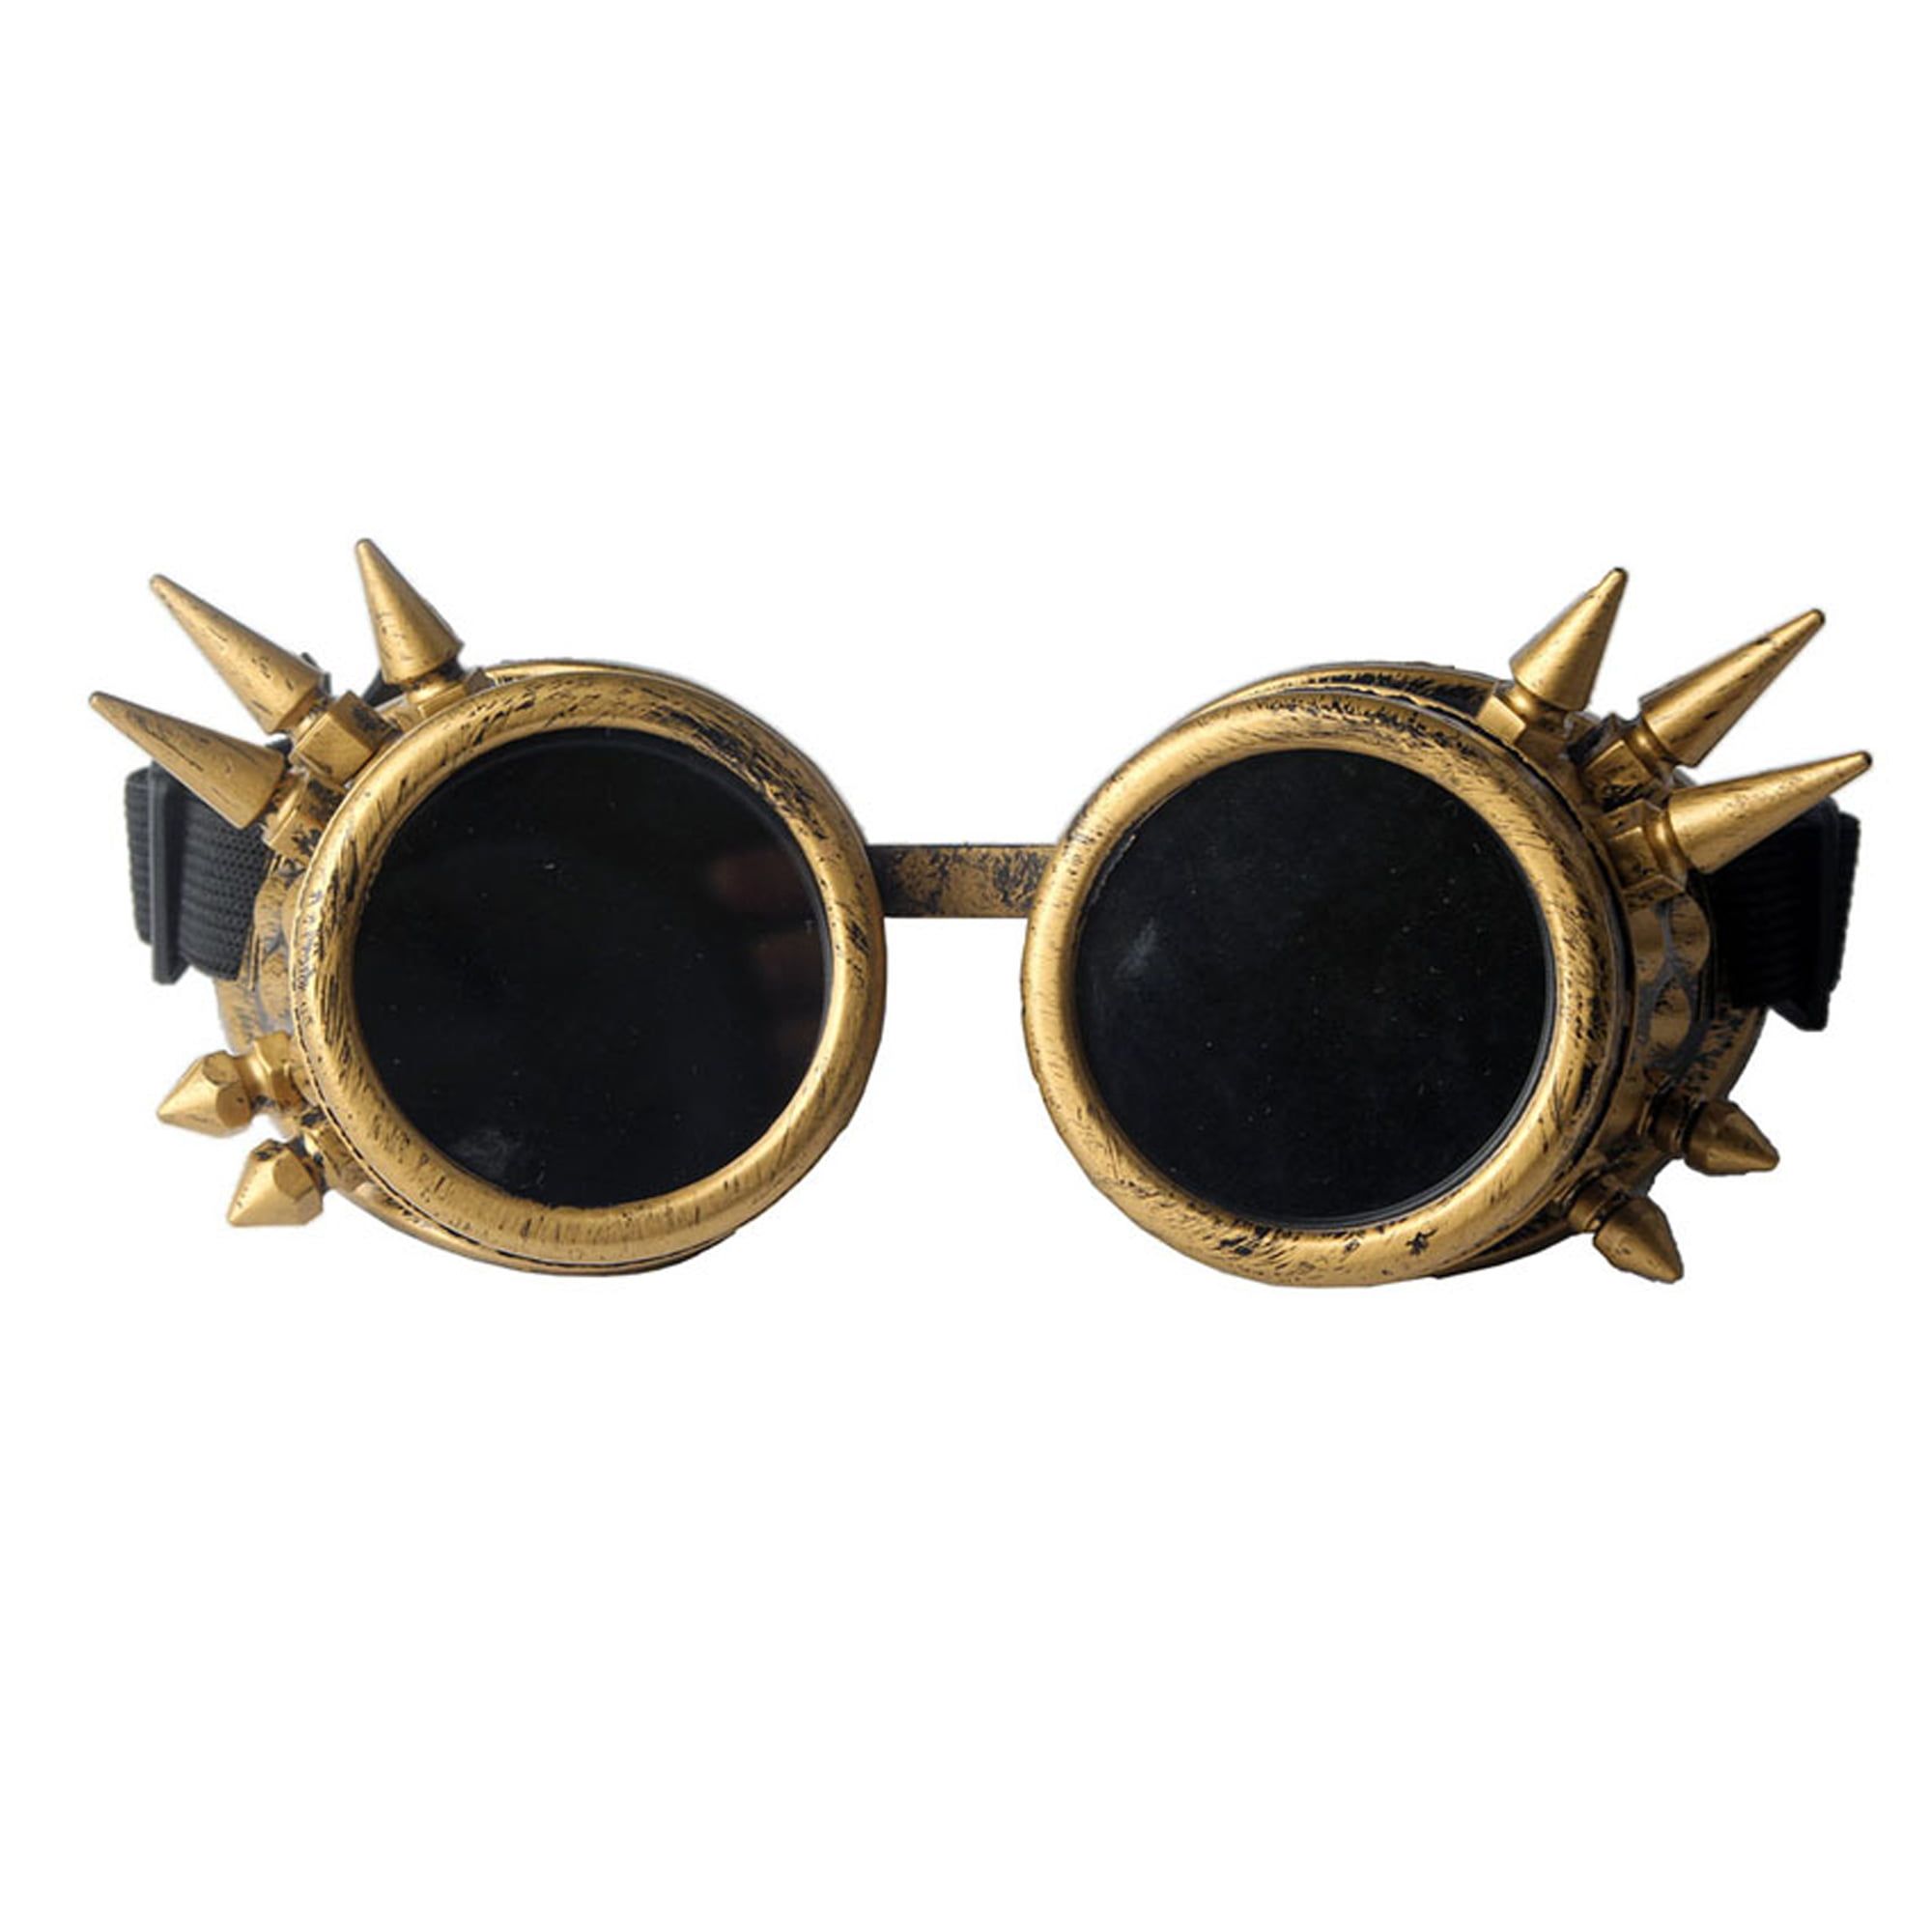 Spike Steampunk Goggles Victorian Welding Cyber Punk Gothic Costume Cosplay